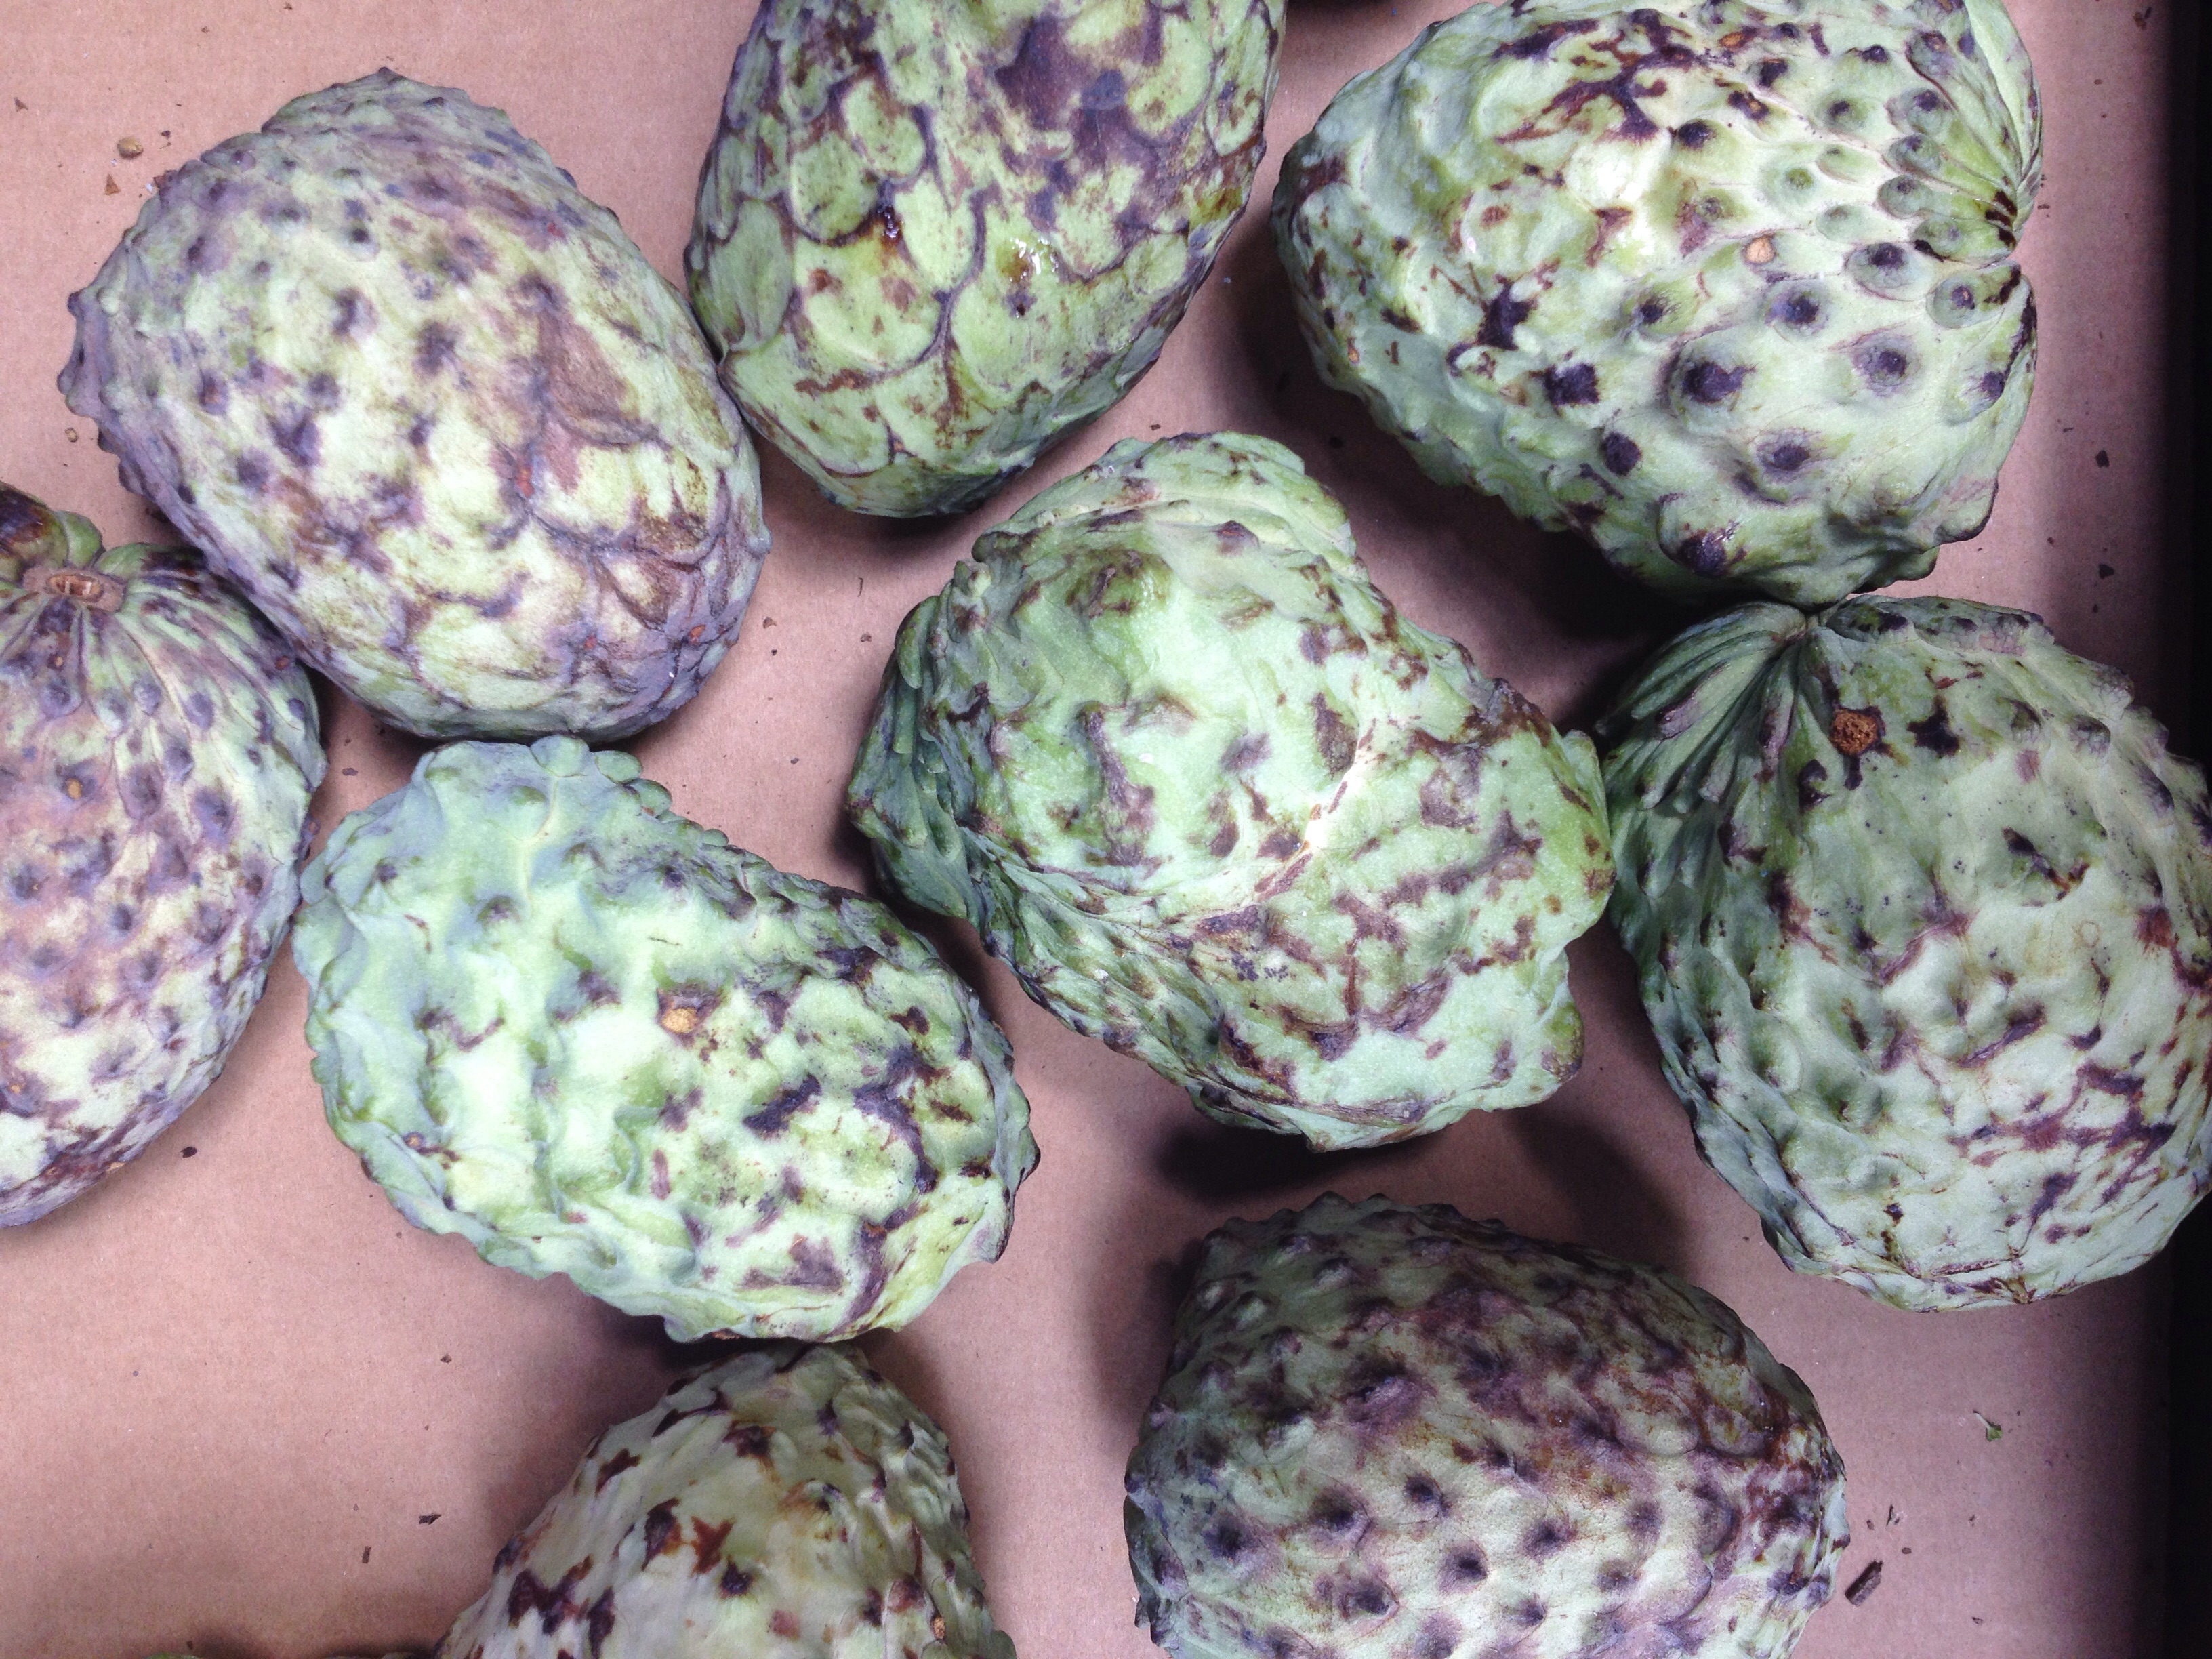 Custard apples, we bought one. They taste ok.